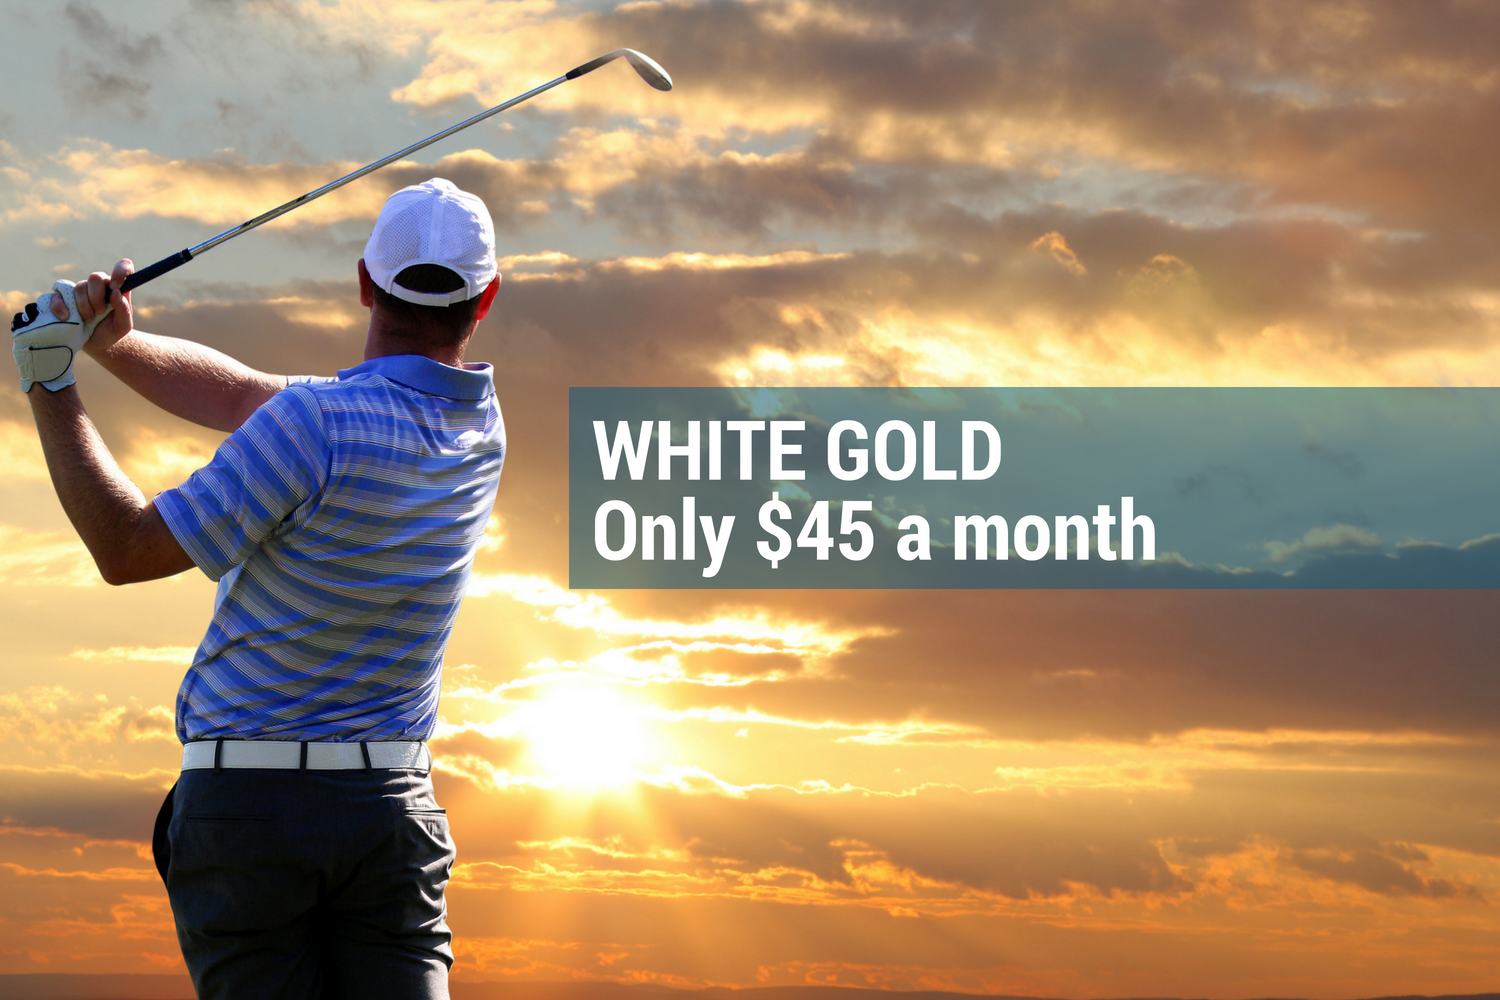 White Gold membership at Horizons